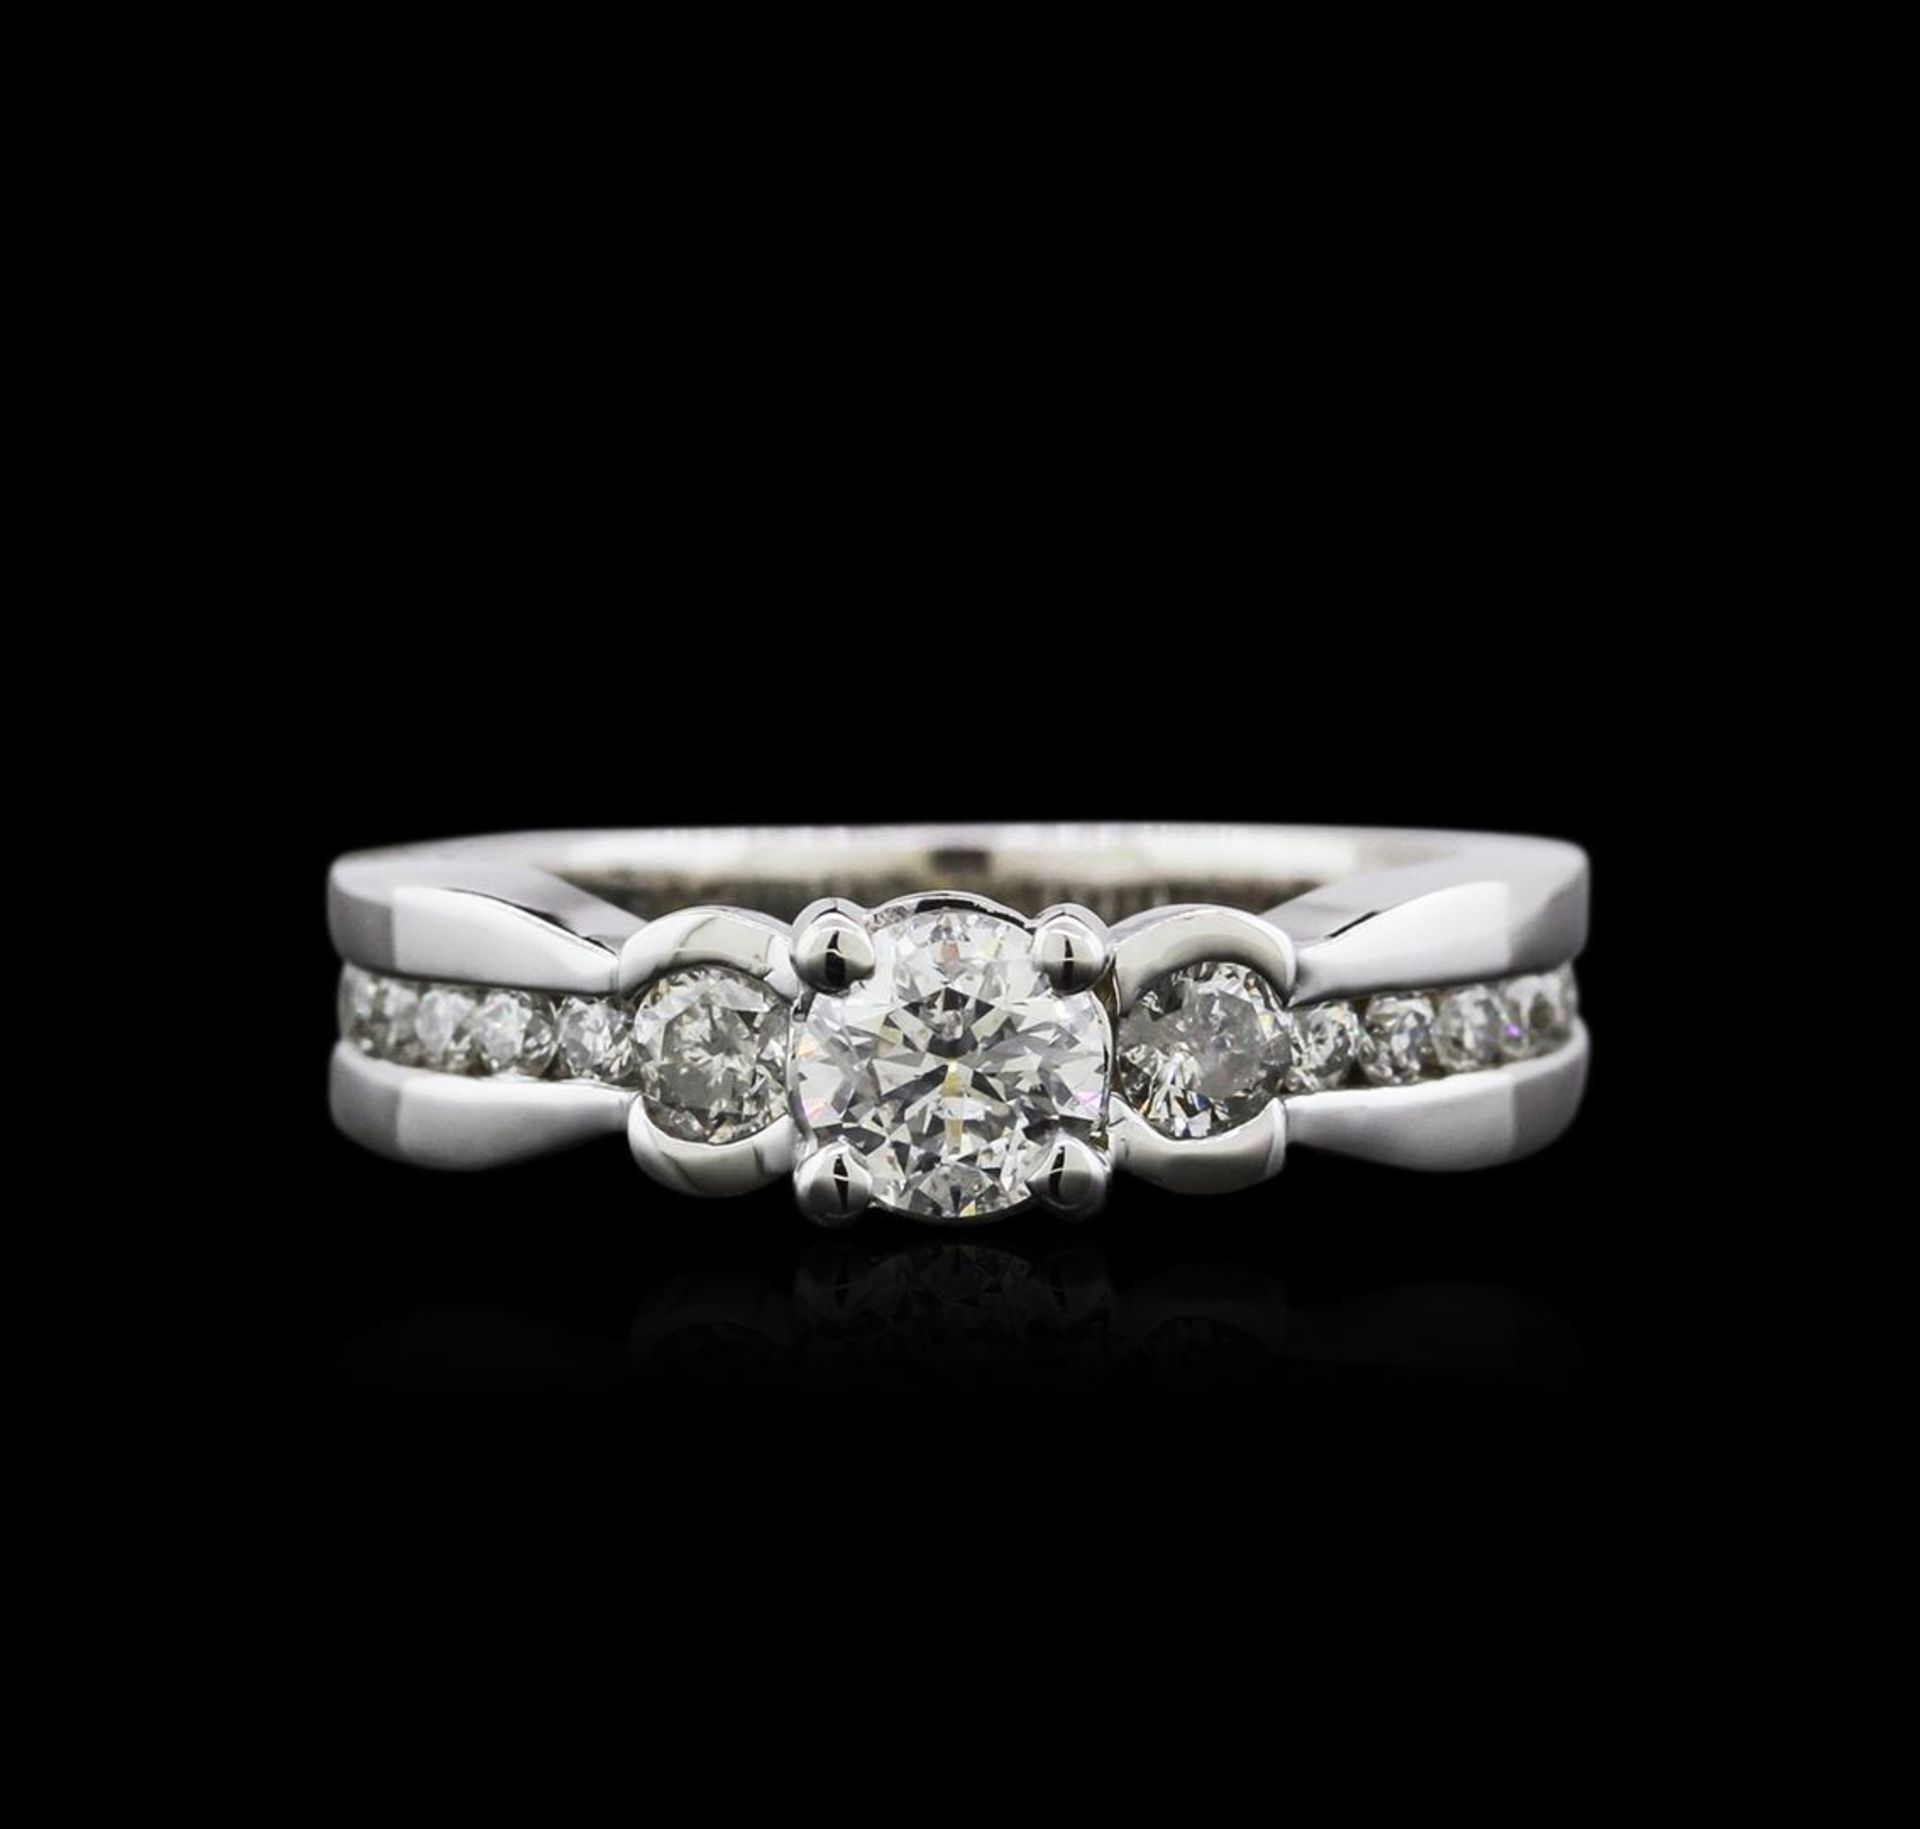 14KT White Gold 1.19 ctw Diamond Ring - Image 3 of 4